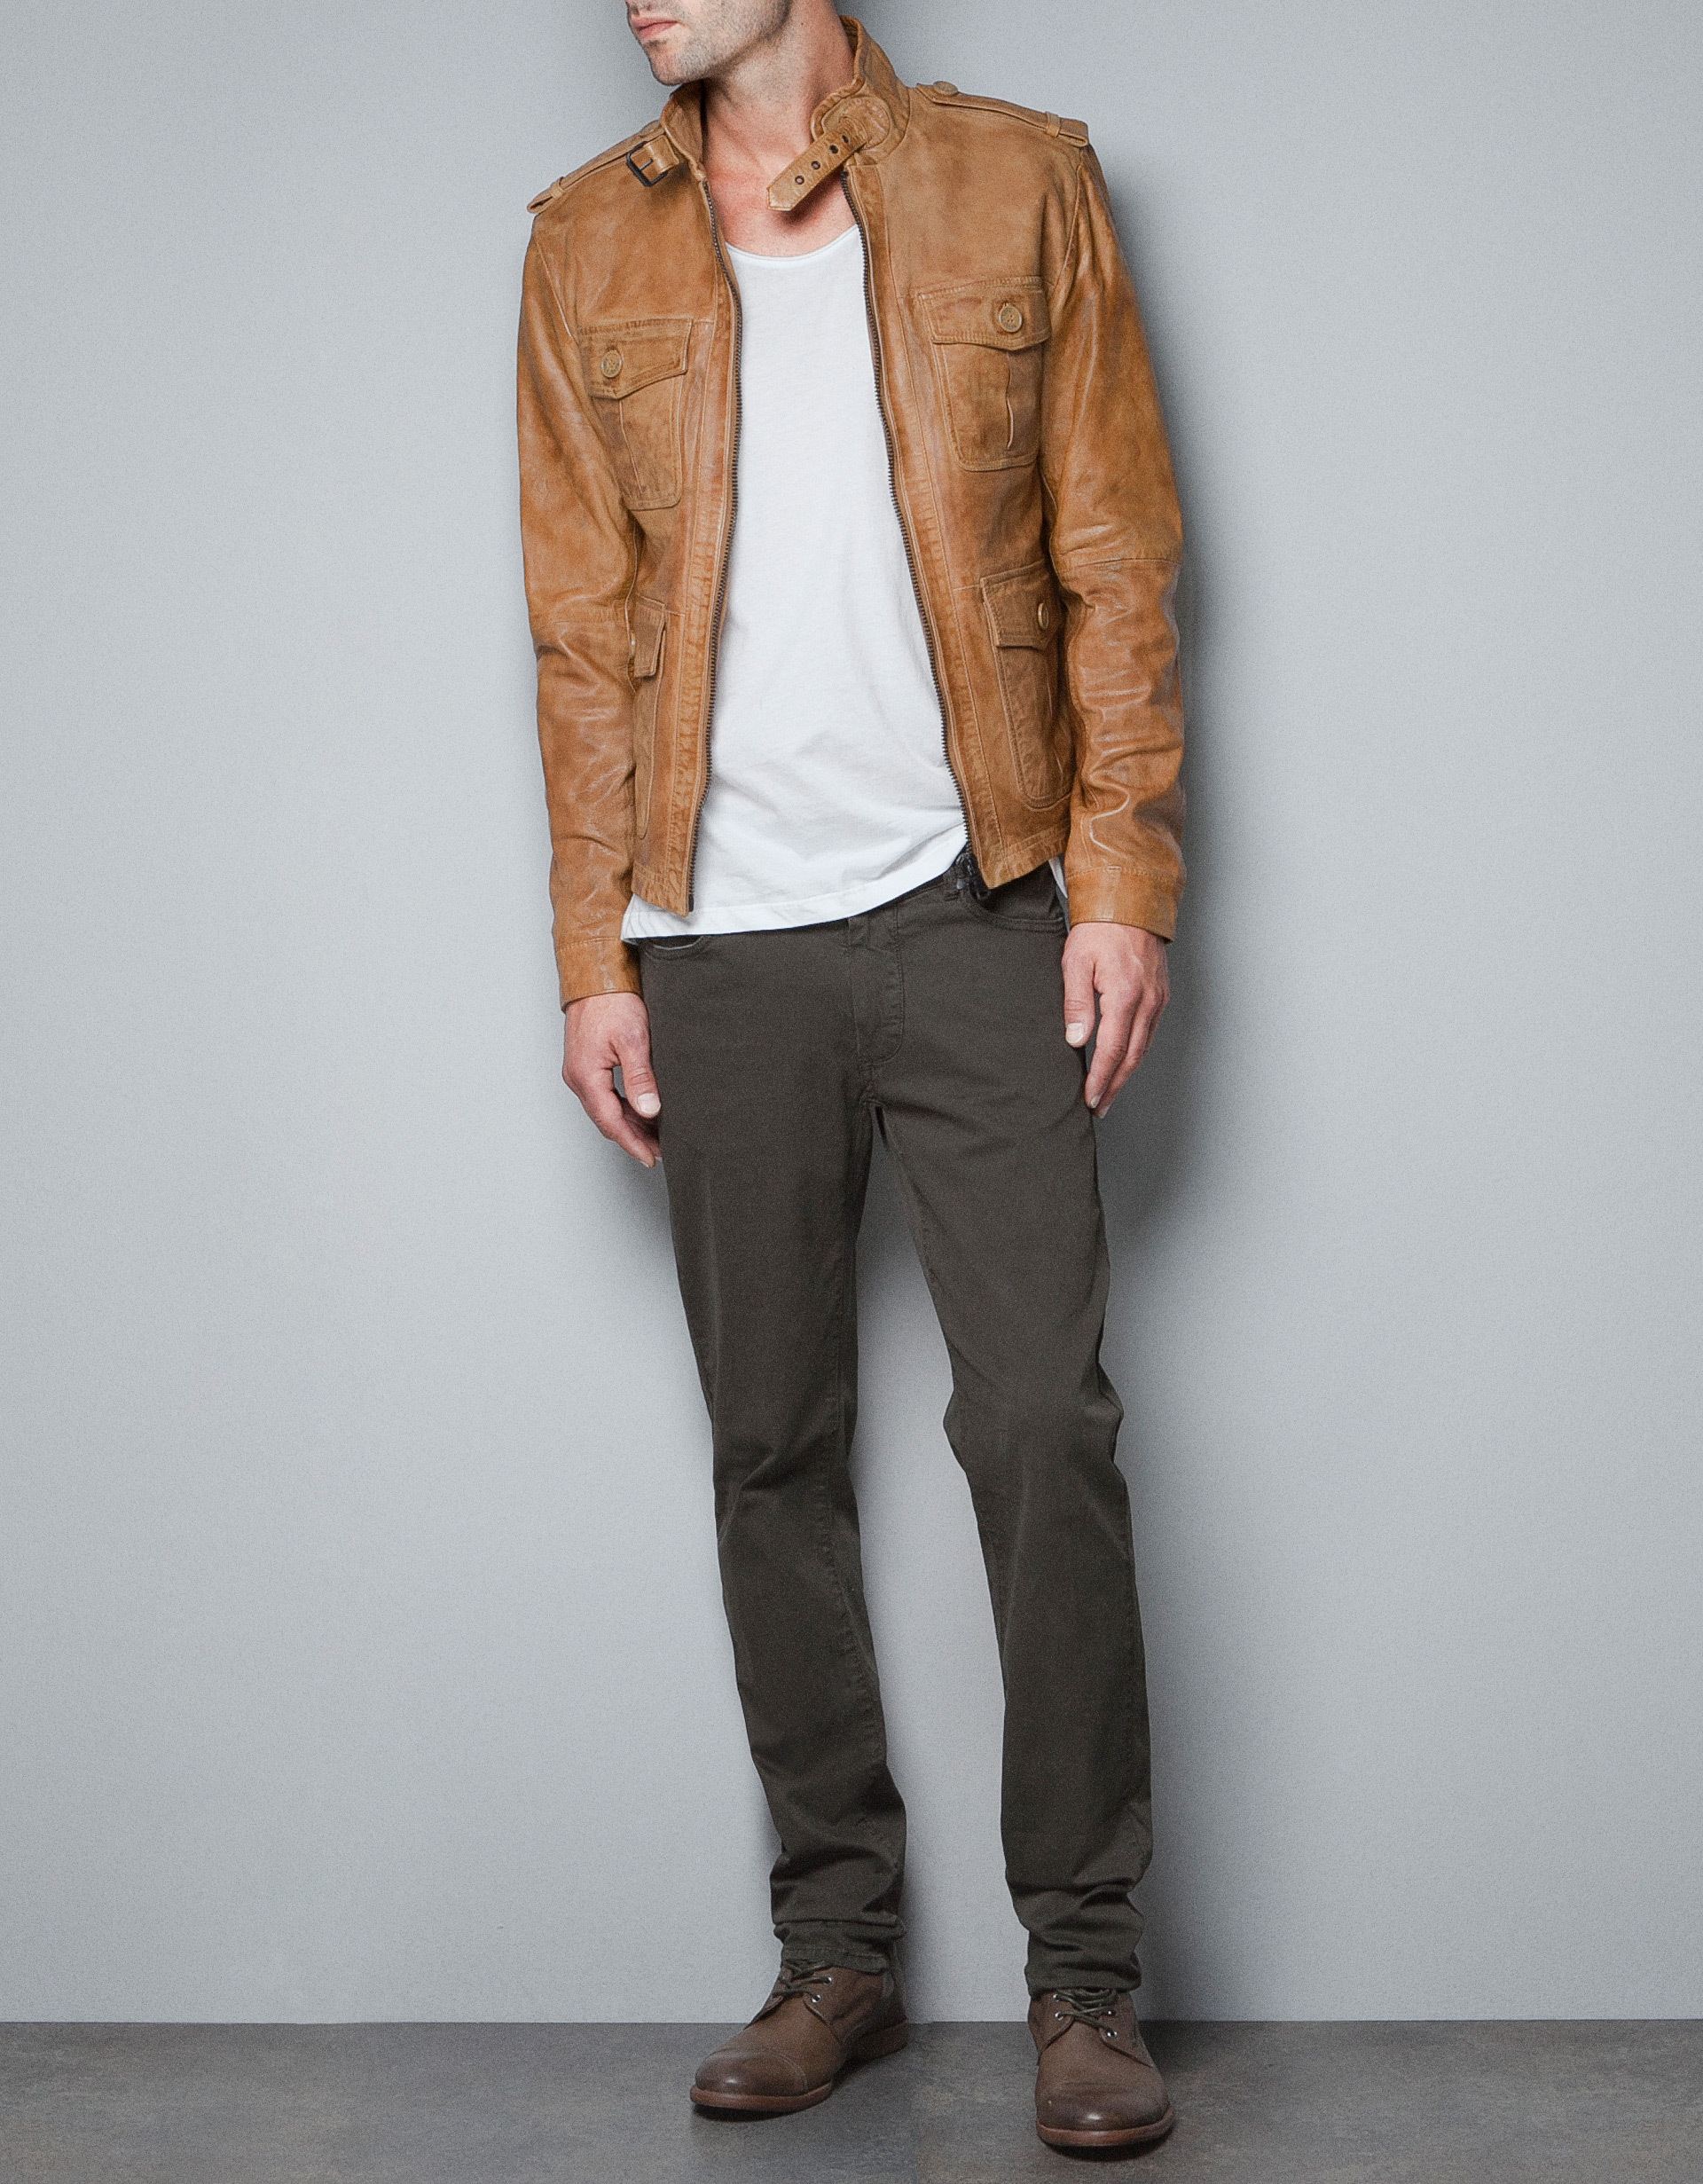 Zara leather jackets for men